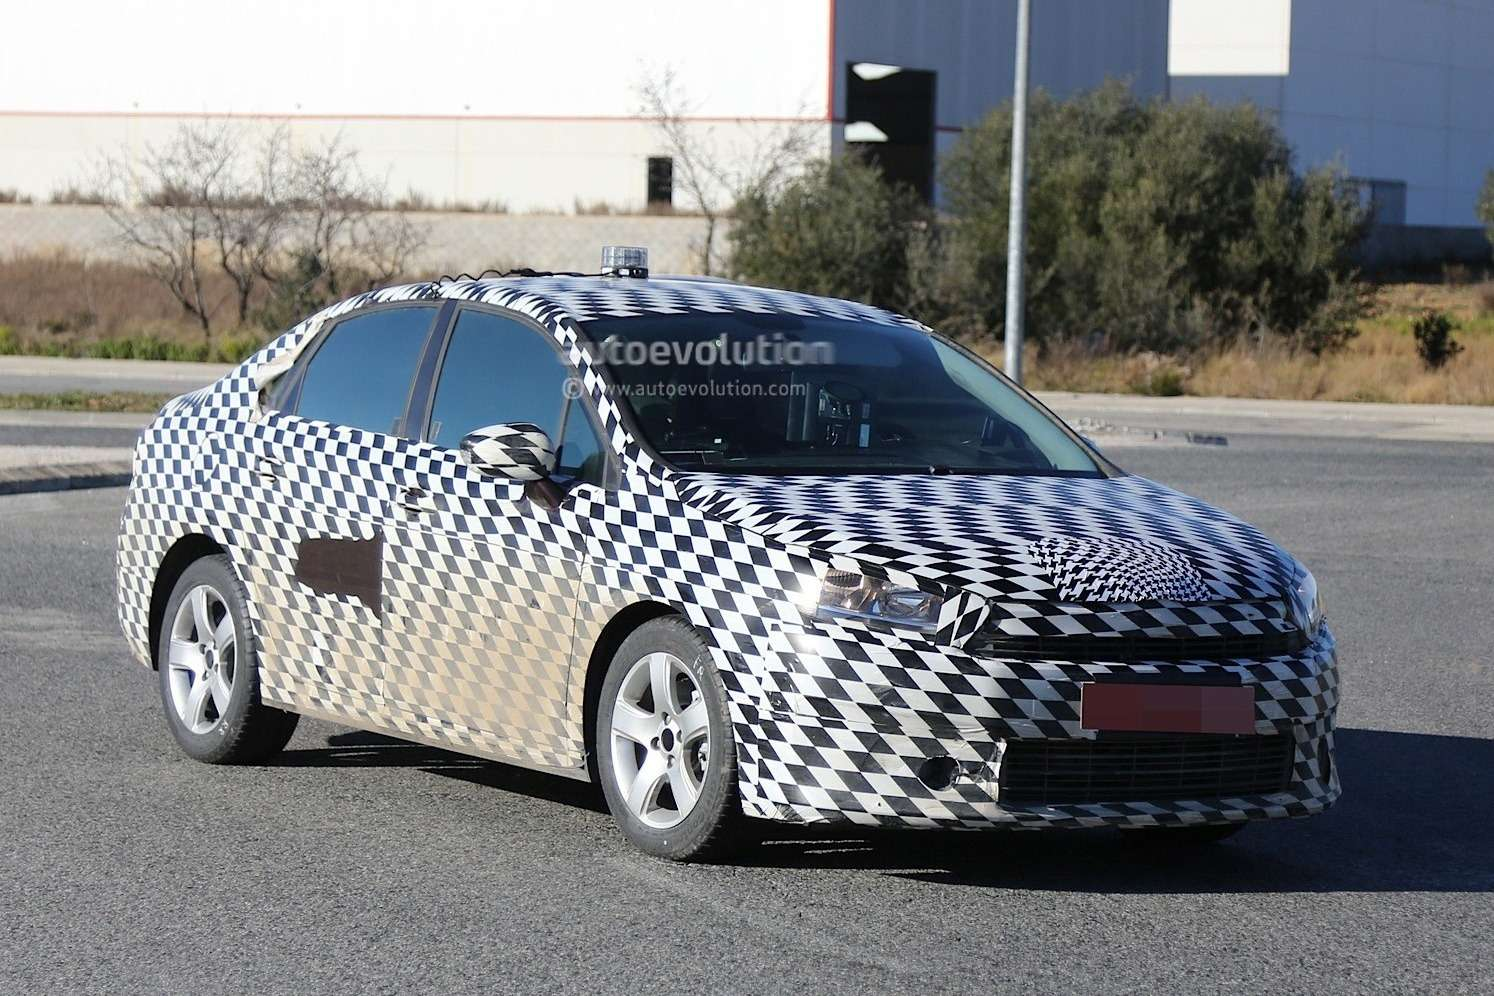 mystery-citroen-compact-sedan-spied-testing-in-spain-could-be-the-new-c4-lunge_3